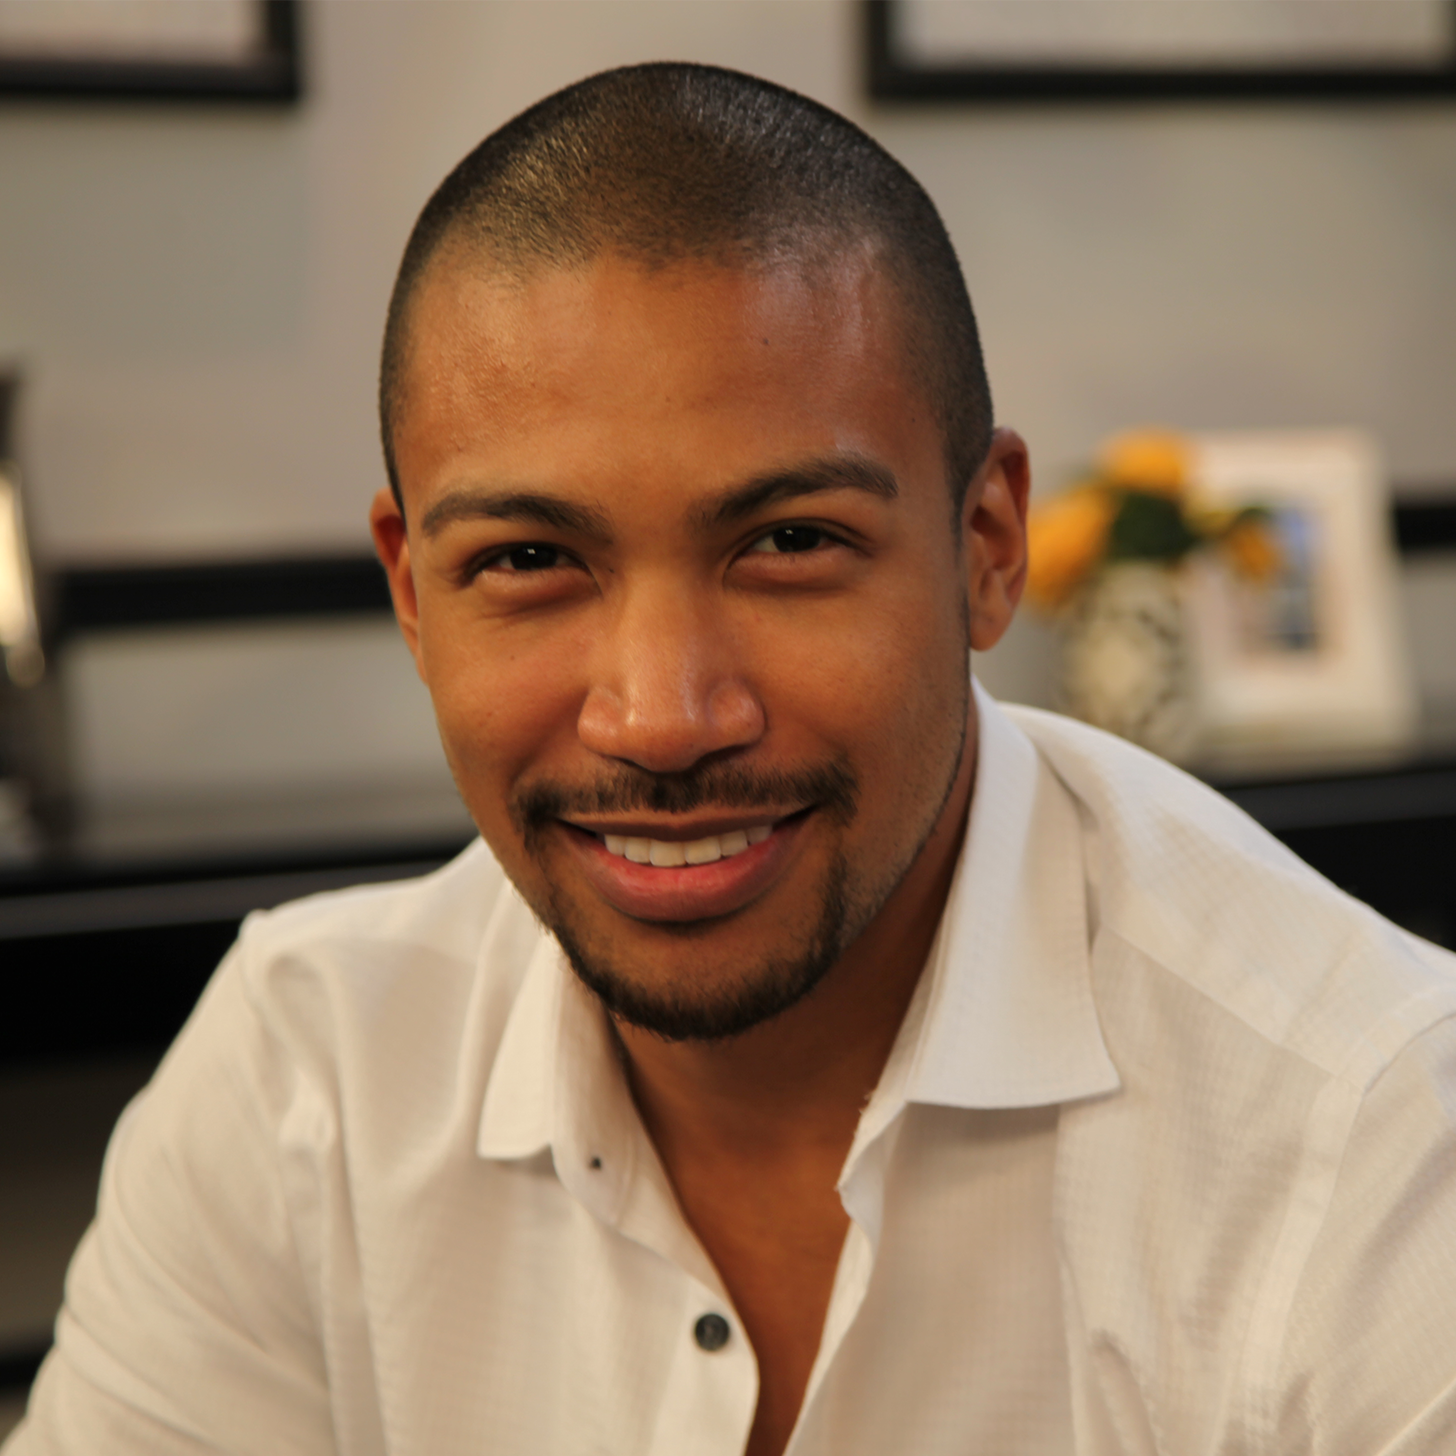 charles michael davis photoshootcharles michael davis gif hunt, charles michael davis fan site, charles michael davis and danielle campbell, charles michael davis instagram, charles michael davis gif, charles michael davis facebook, charles michael davis photoshoot, charles michael davis twitter, charles michael davis, charles michael davis grey anatomy, charles michael davis parents, charles michael davis height, charles michael davis tumblr, charles michael davis imdb, charles michael davis singing, charles michael davis age, charles michael davis official instagram, charles michael davis wikipedia, charles michael davis wife, charles michael davis girlfriend